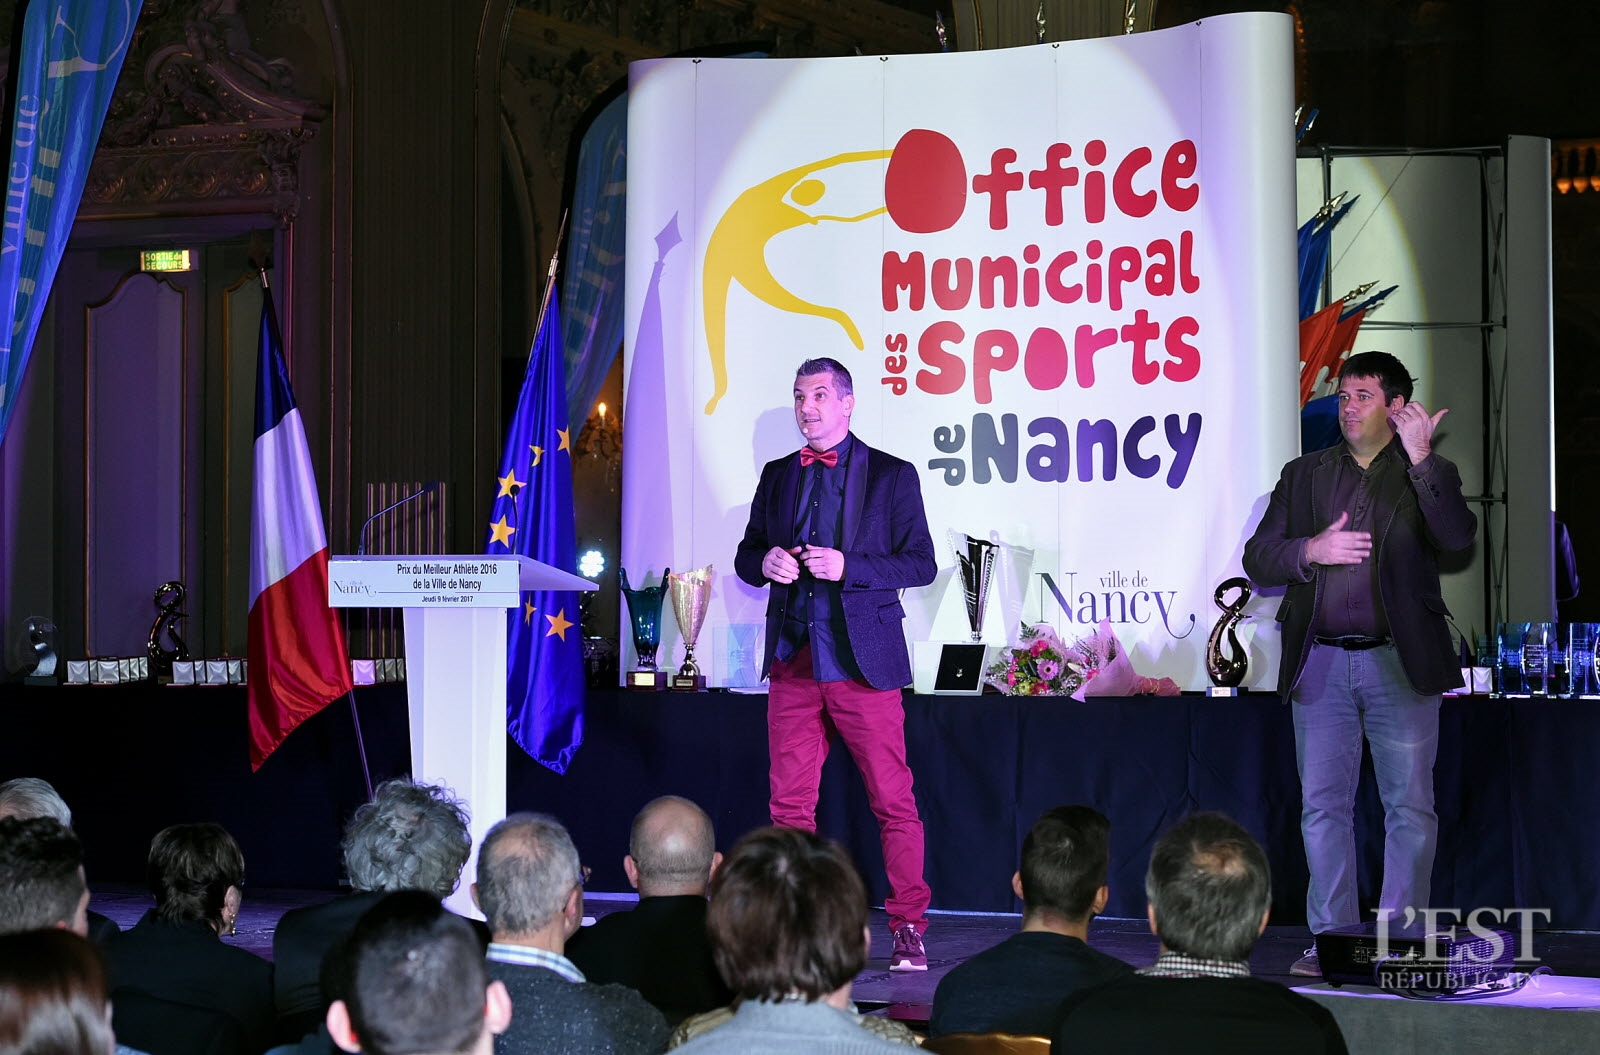 prix-du-meilleur-athlete-2016-de-la-ville-de-nancy-photo-cedric-jacquot-1486679407.jpeg